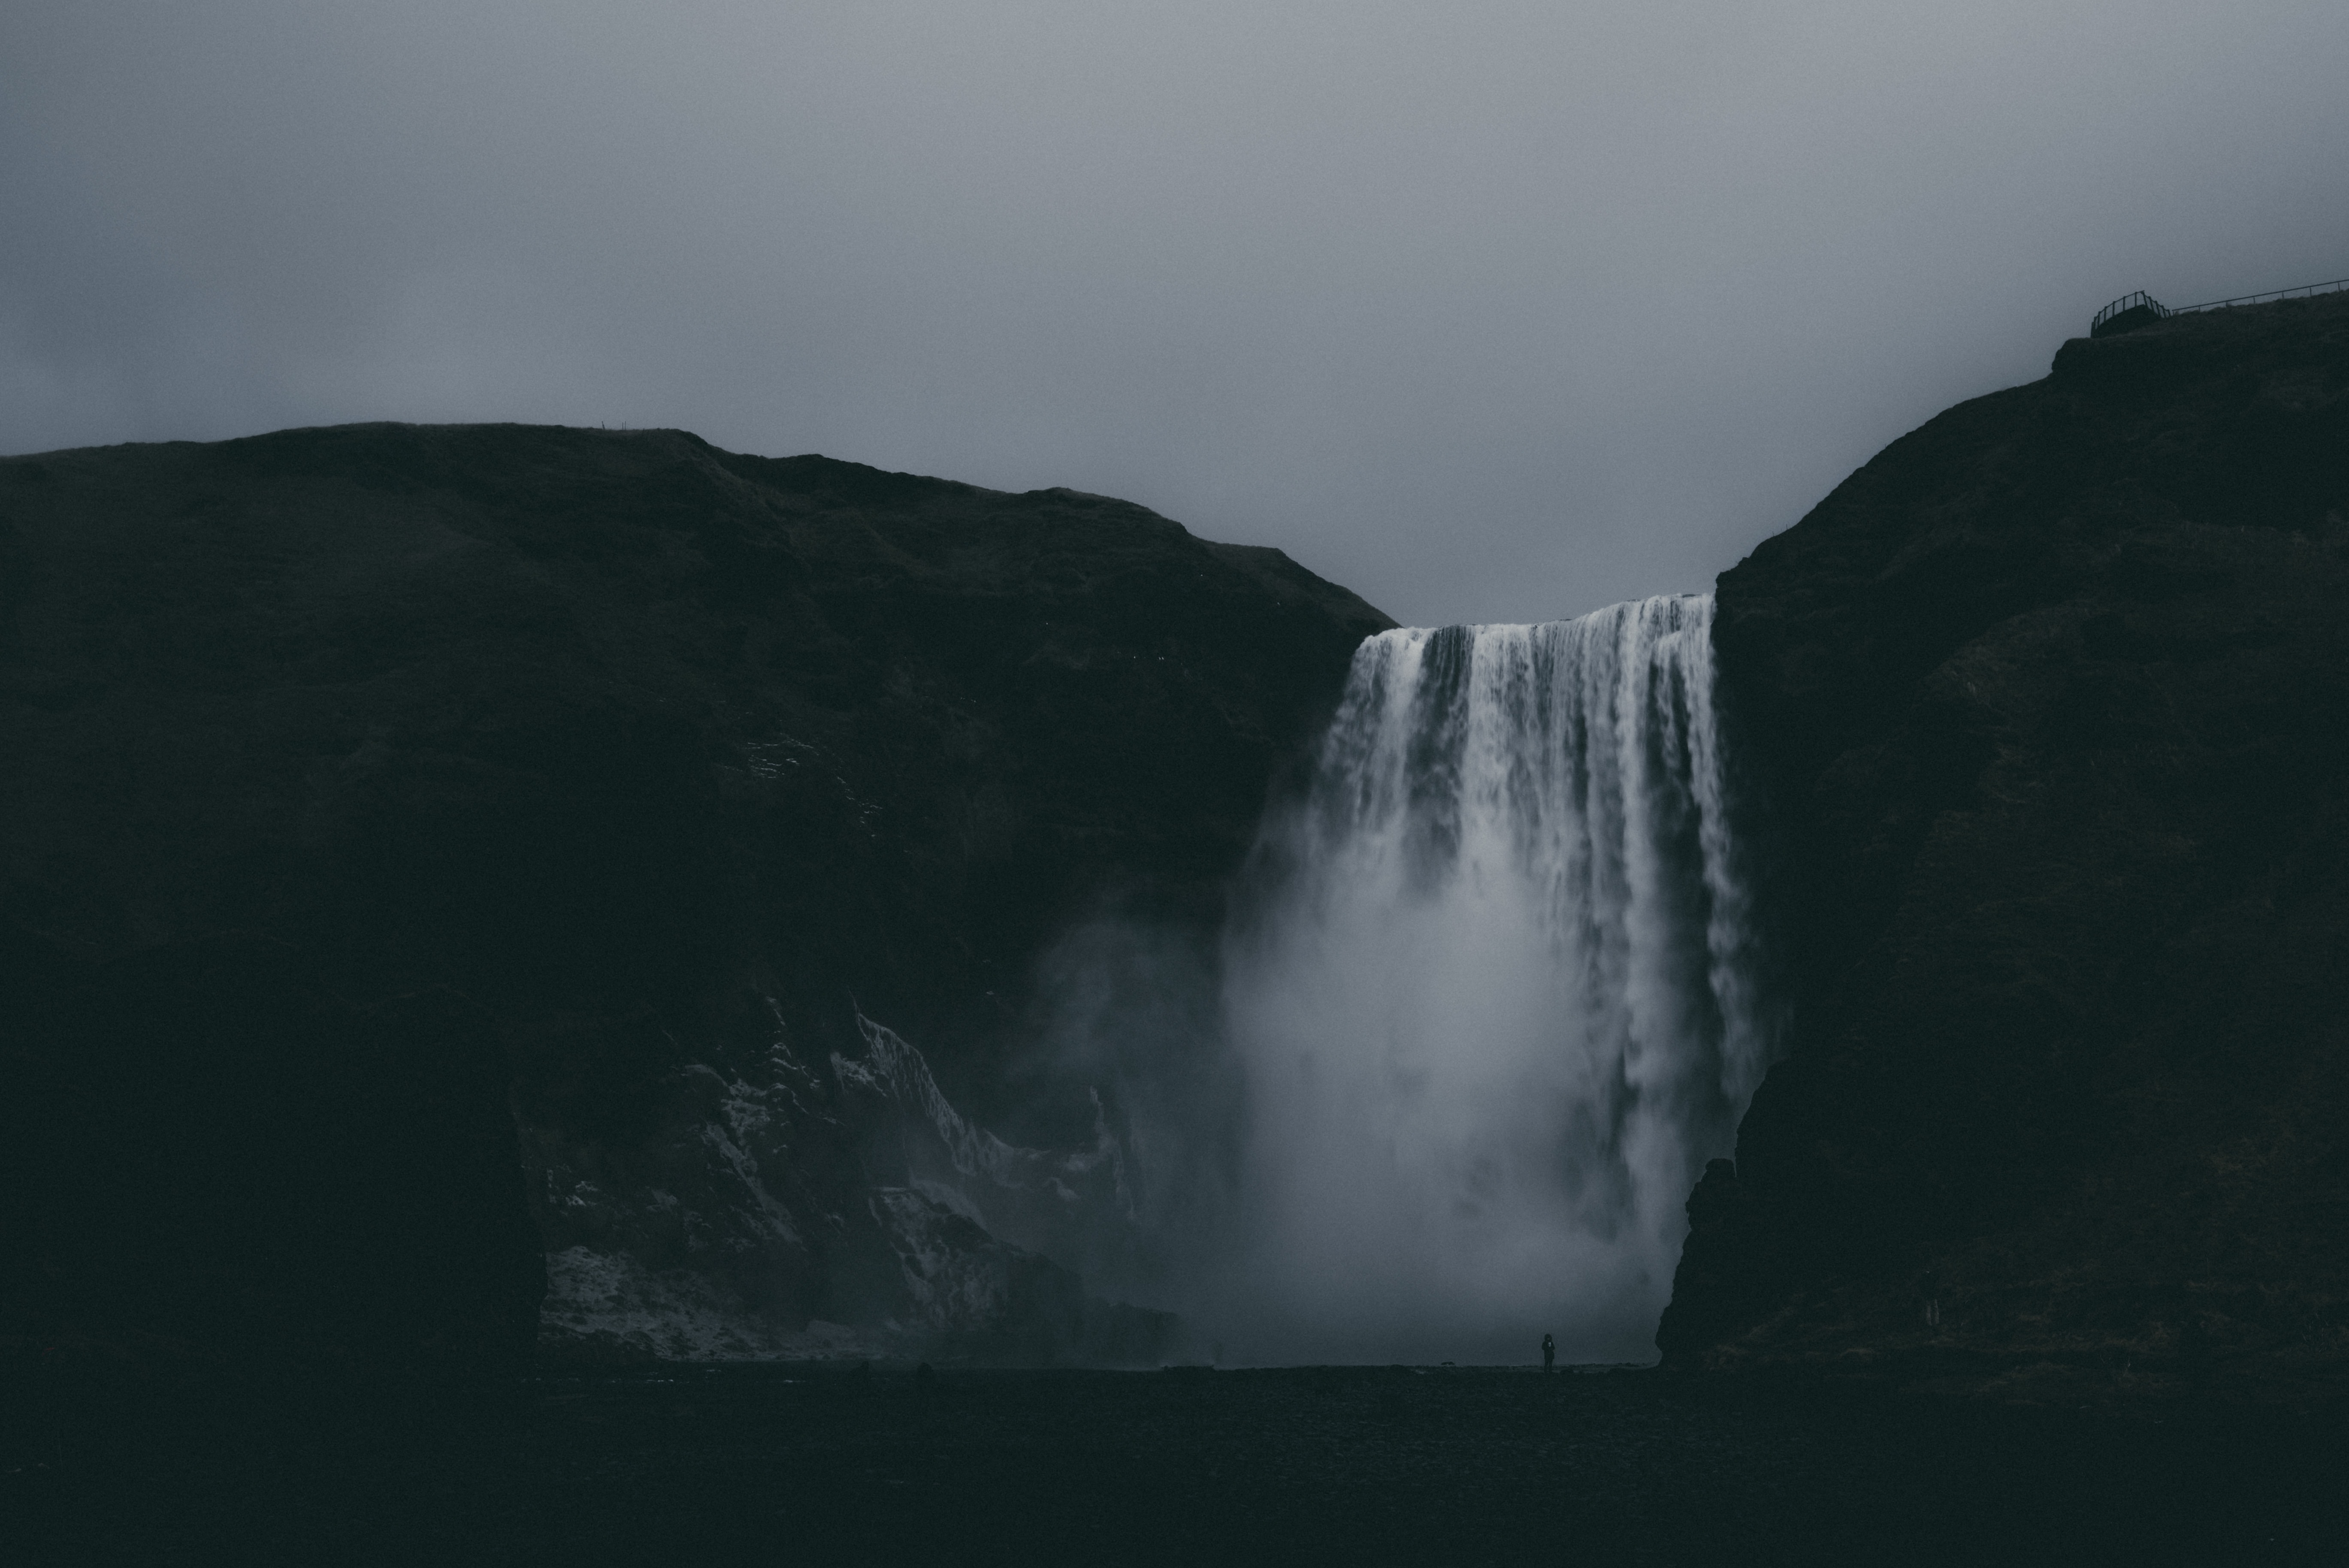 low-angle photography of waterfalls under cloudy sky